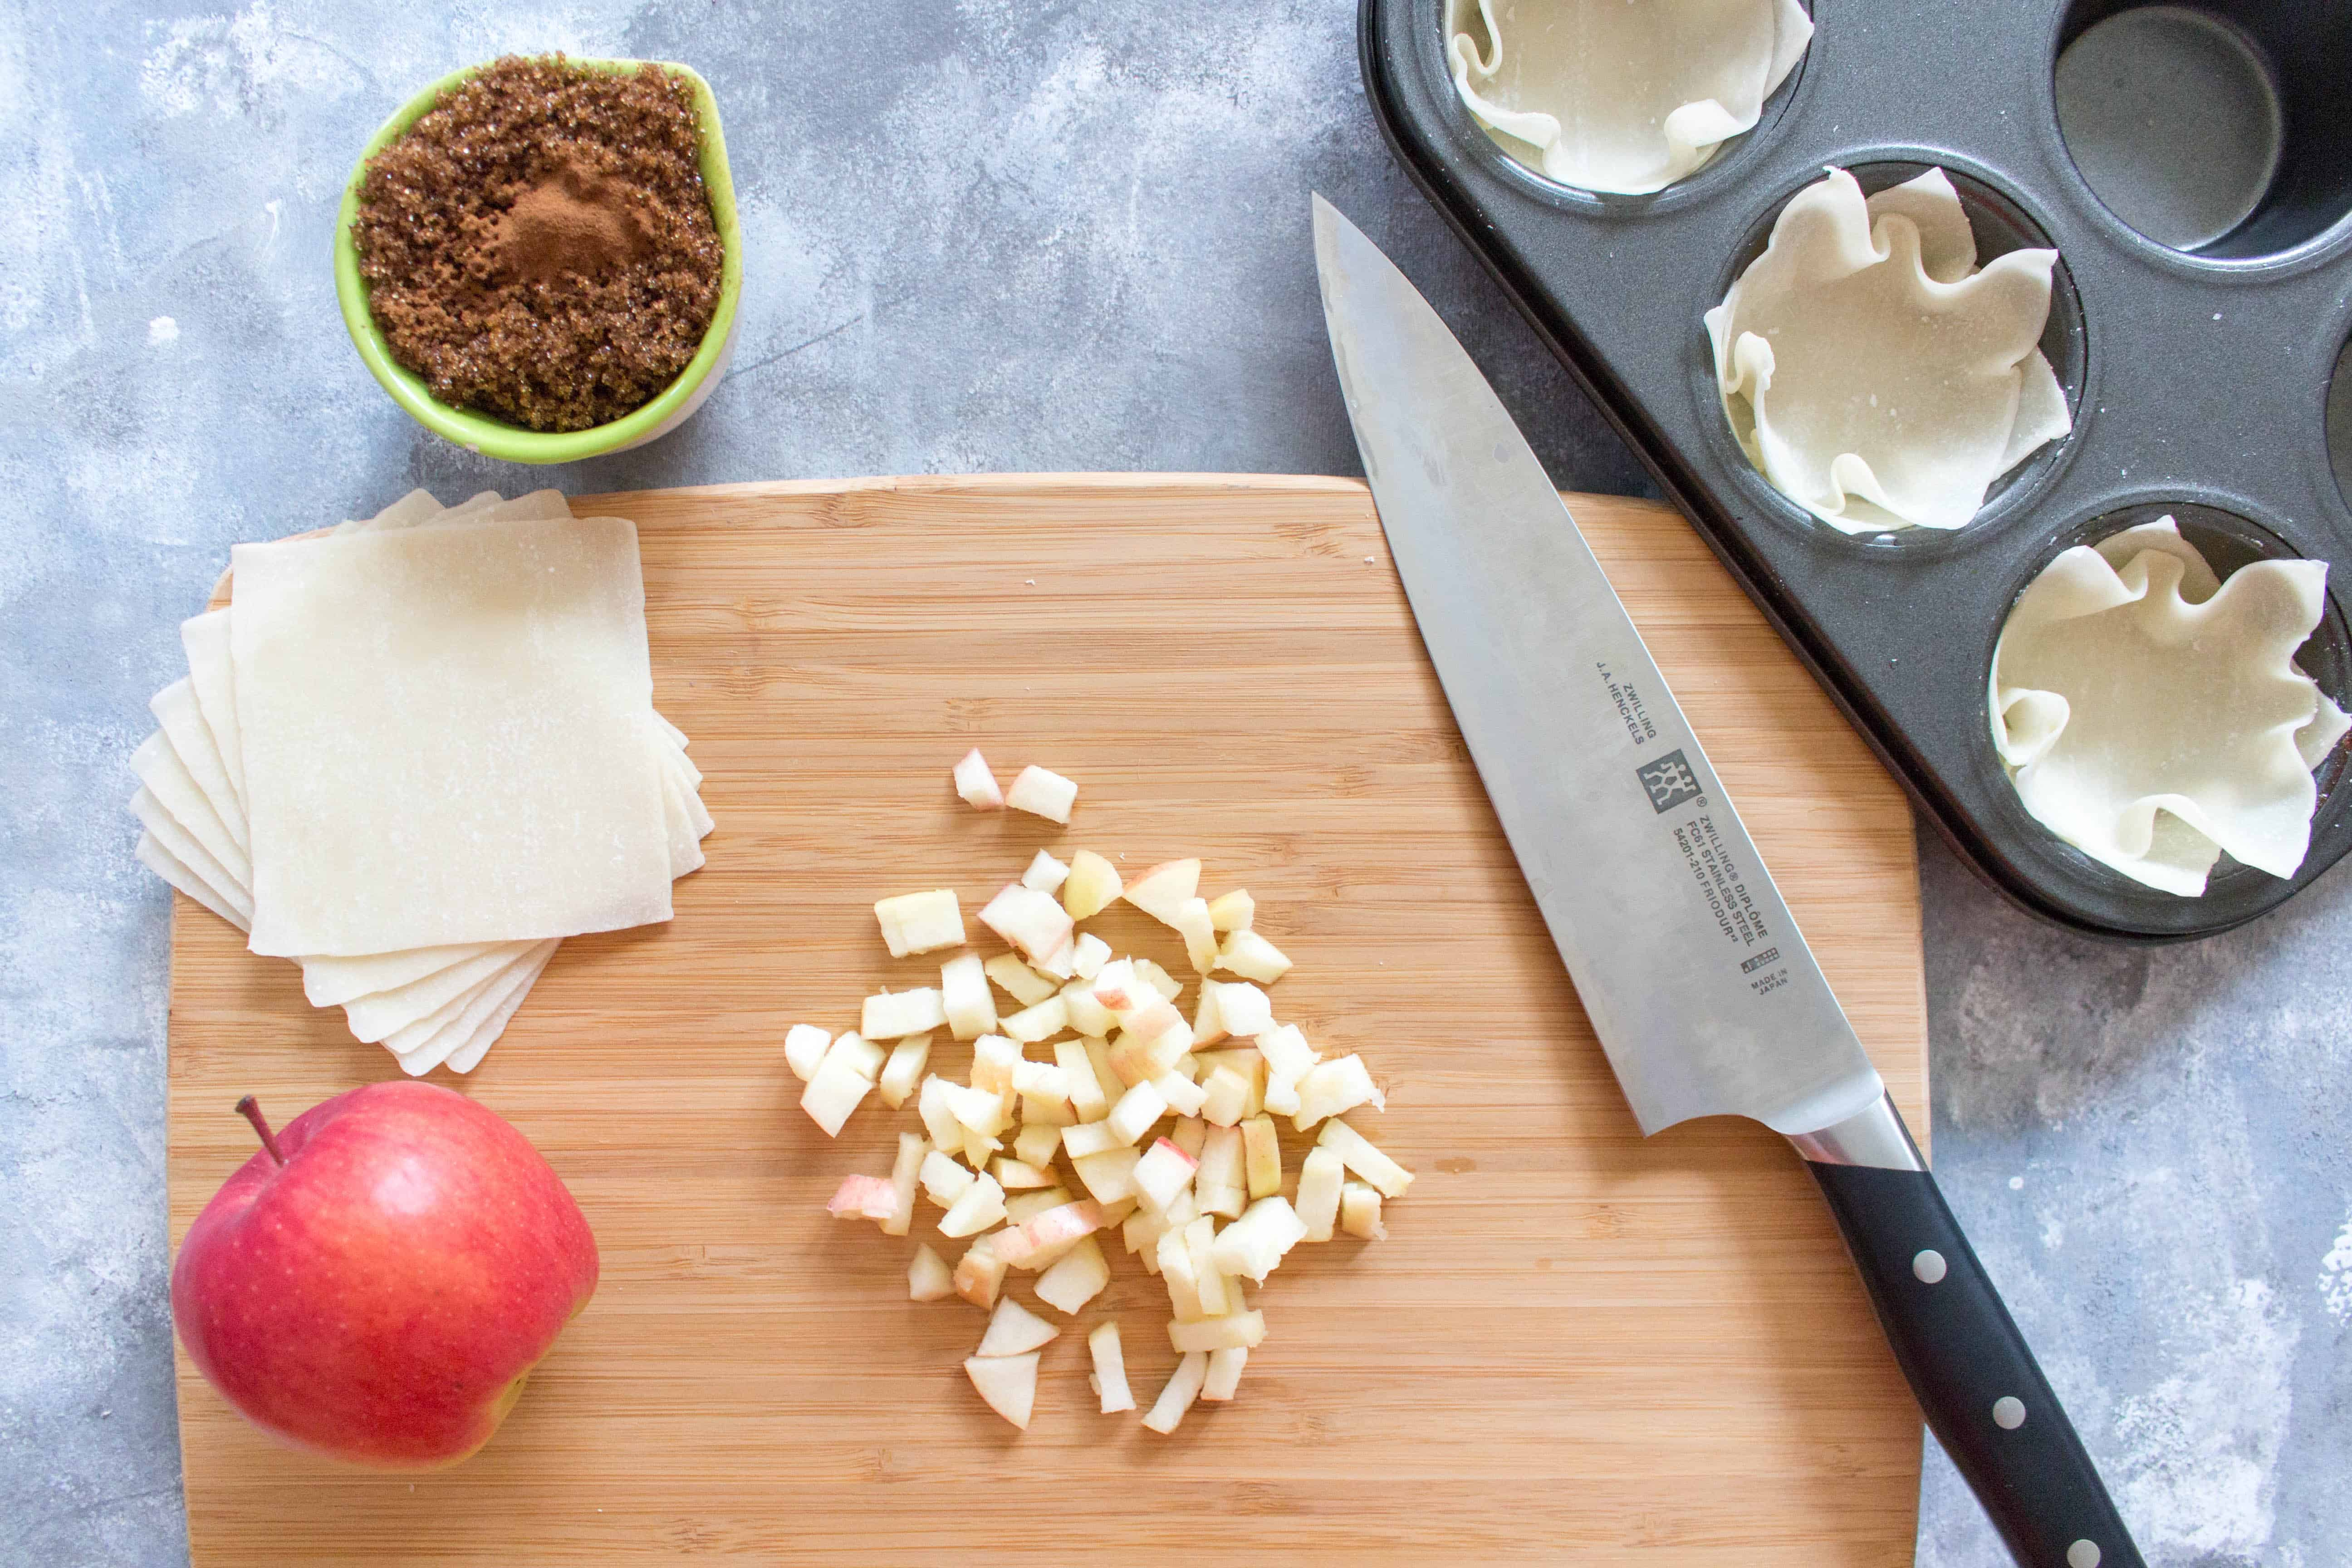 A fun new twist on your traditional apple pie. Plus, individual servings means less time spent cutting and more time eating!